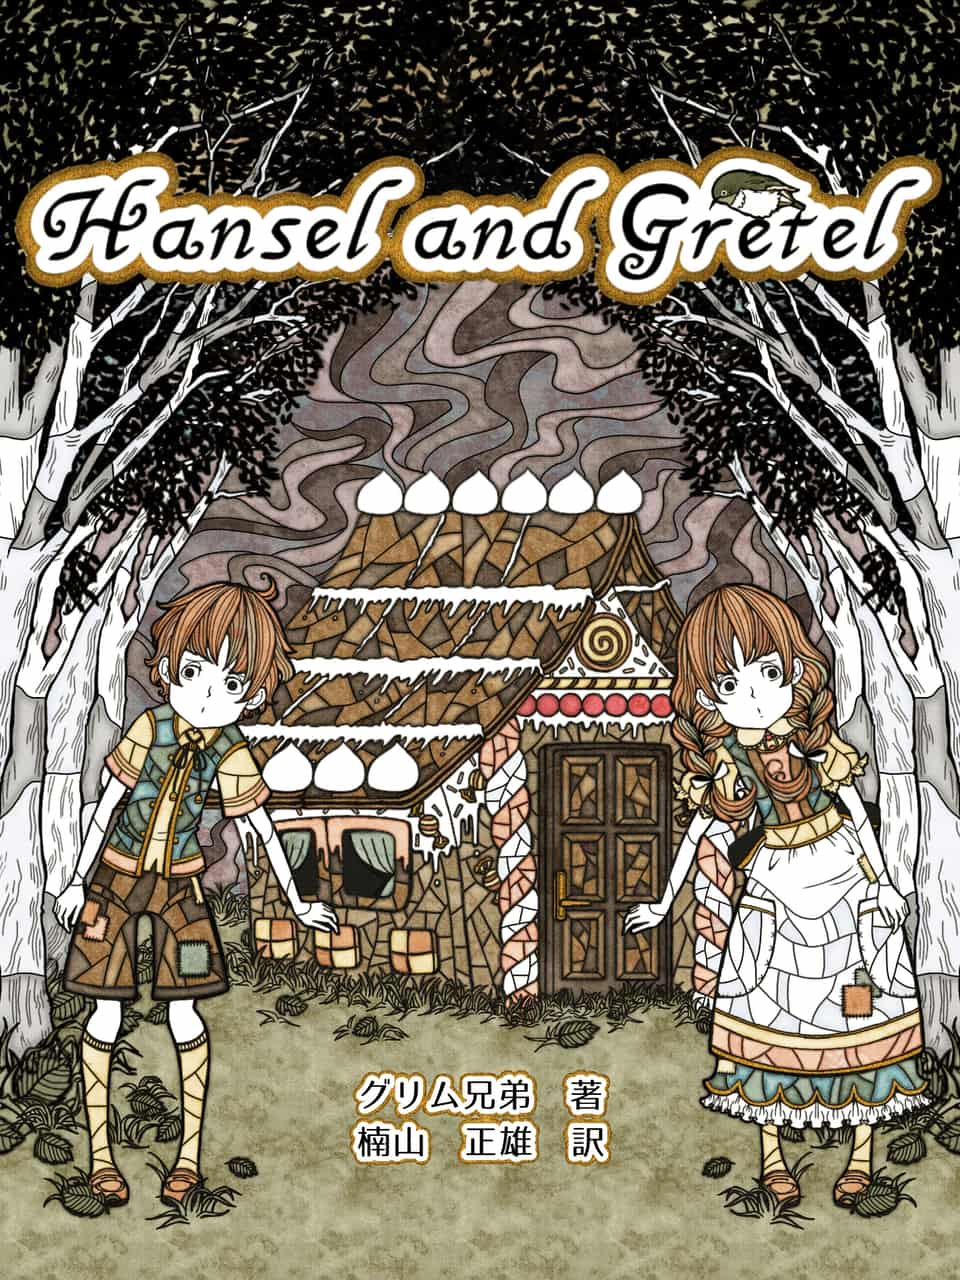 瑠実カオル/Hansel and Gretel